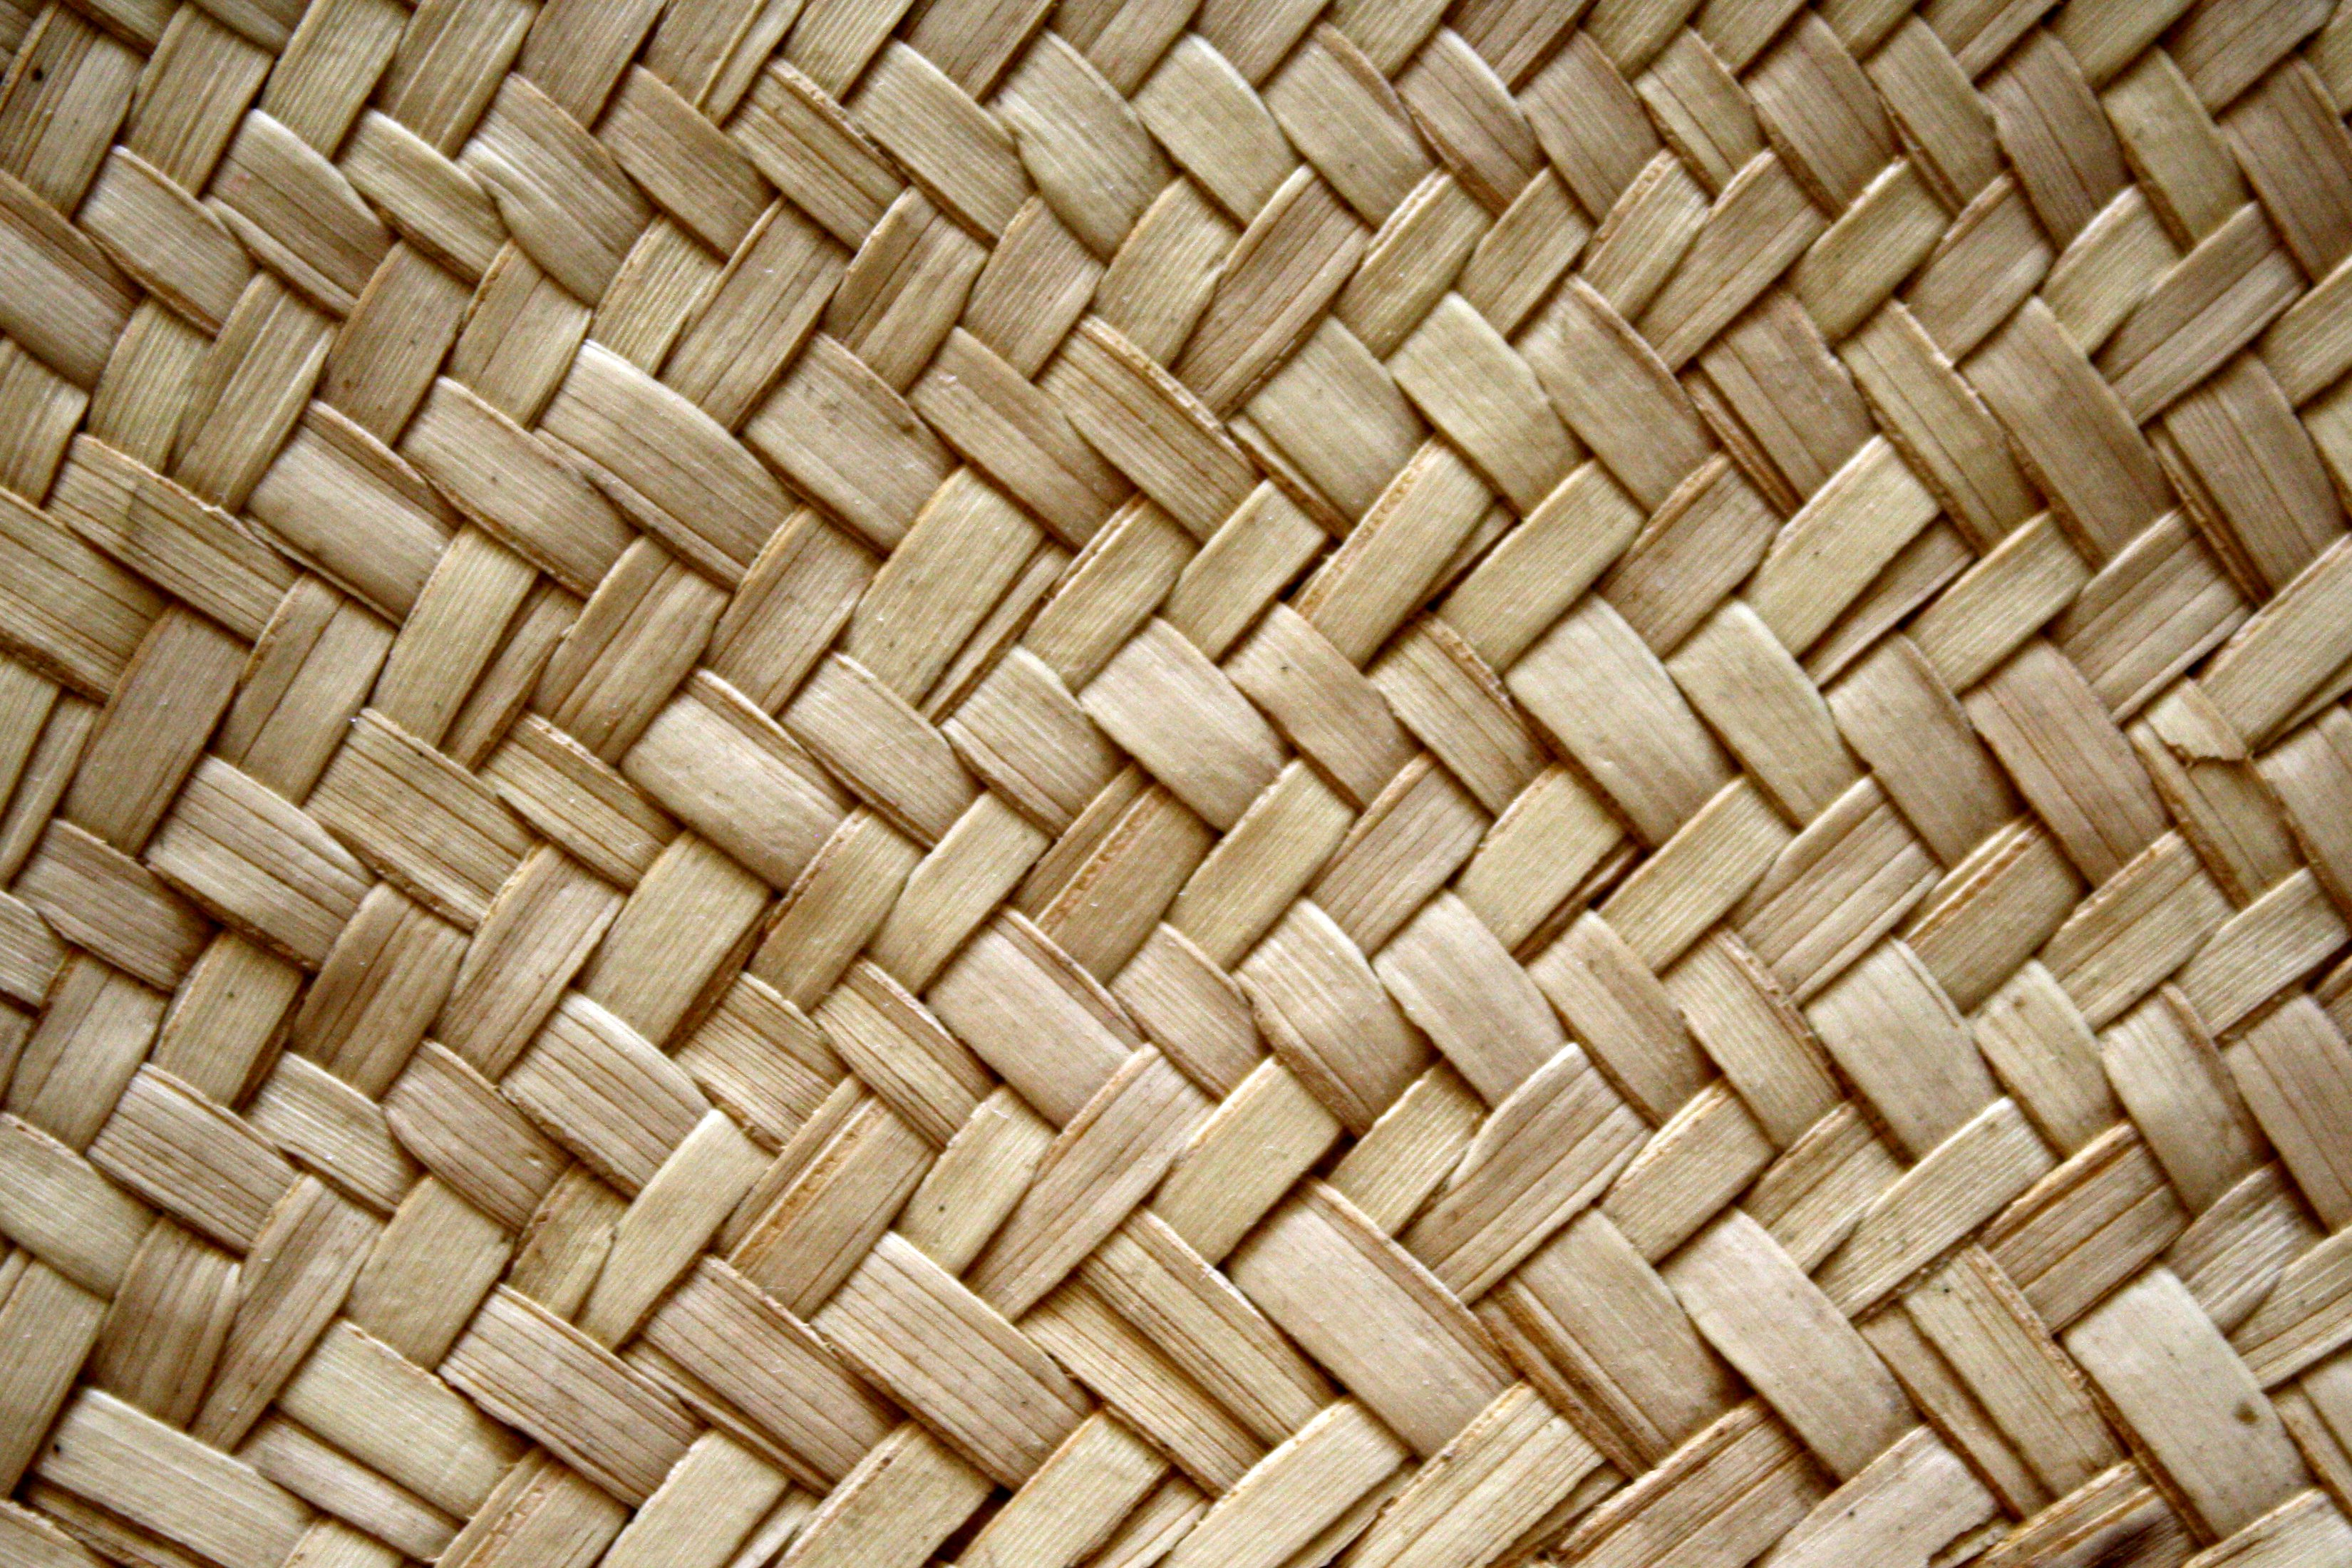 Woven Straw Texture Picture Free Photograph Photos